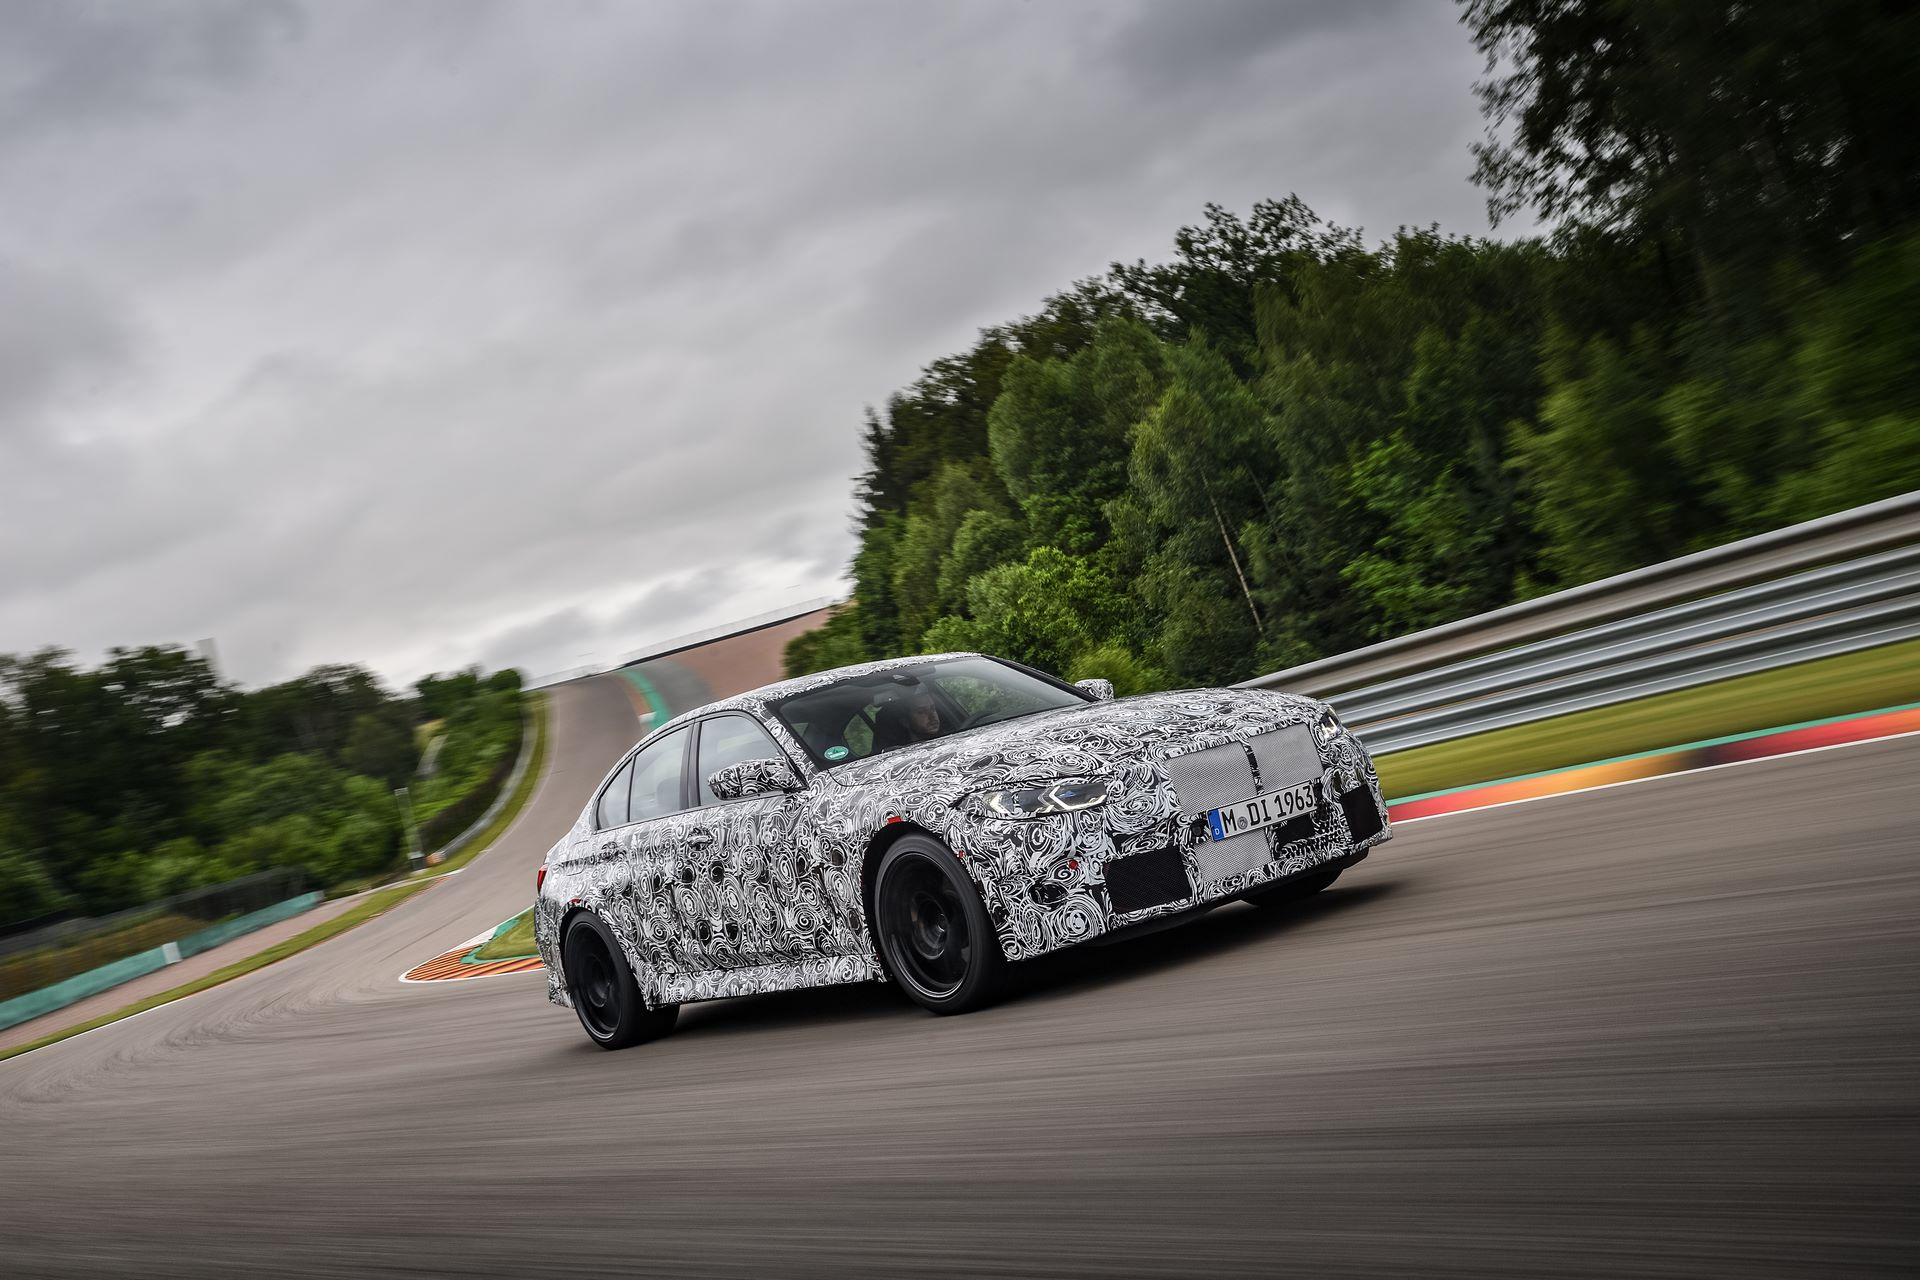 BMW-M3-and-M4-2020-tests-8